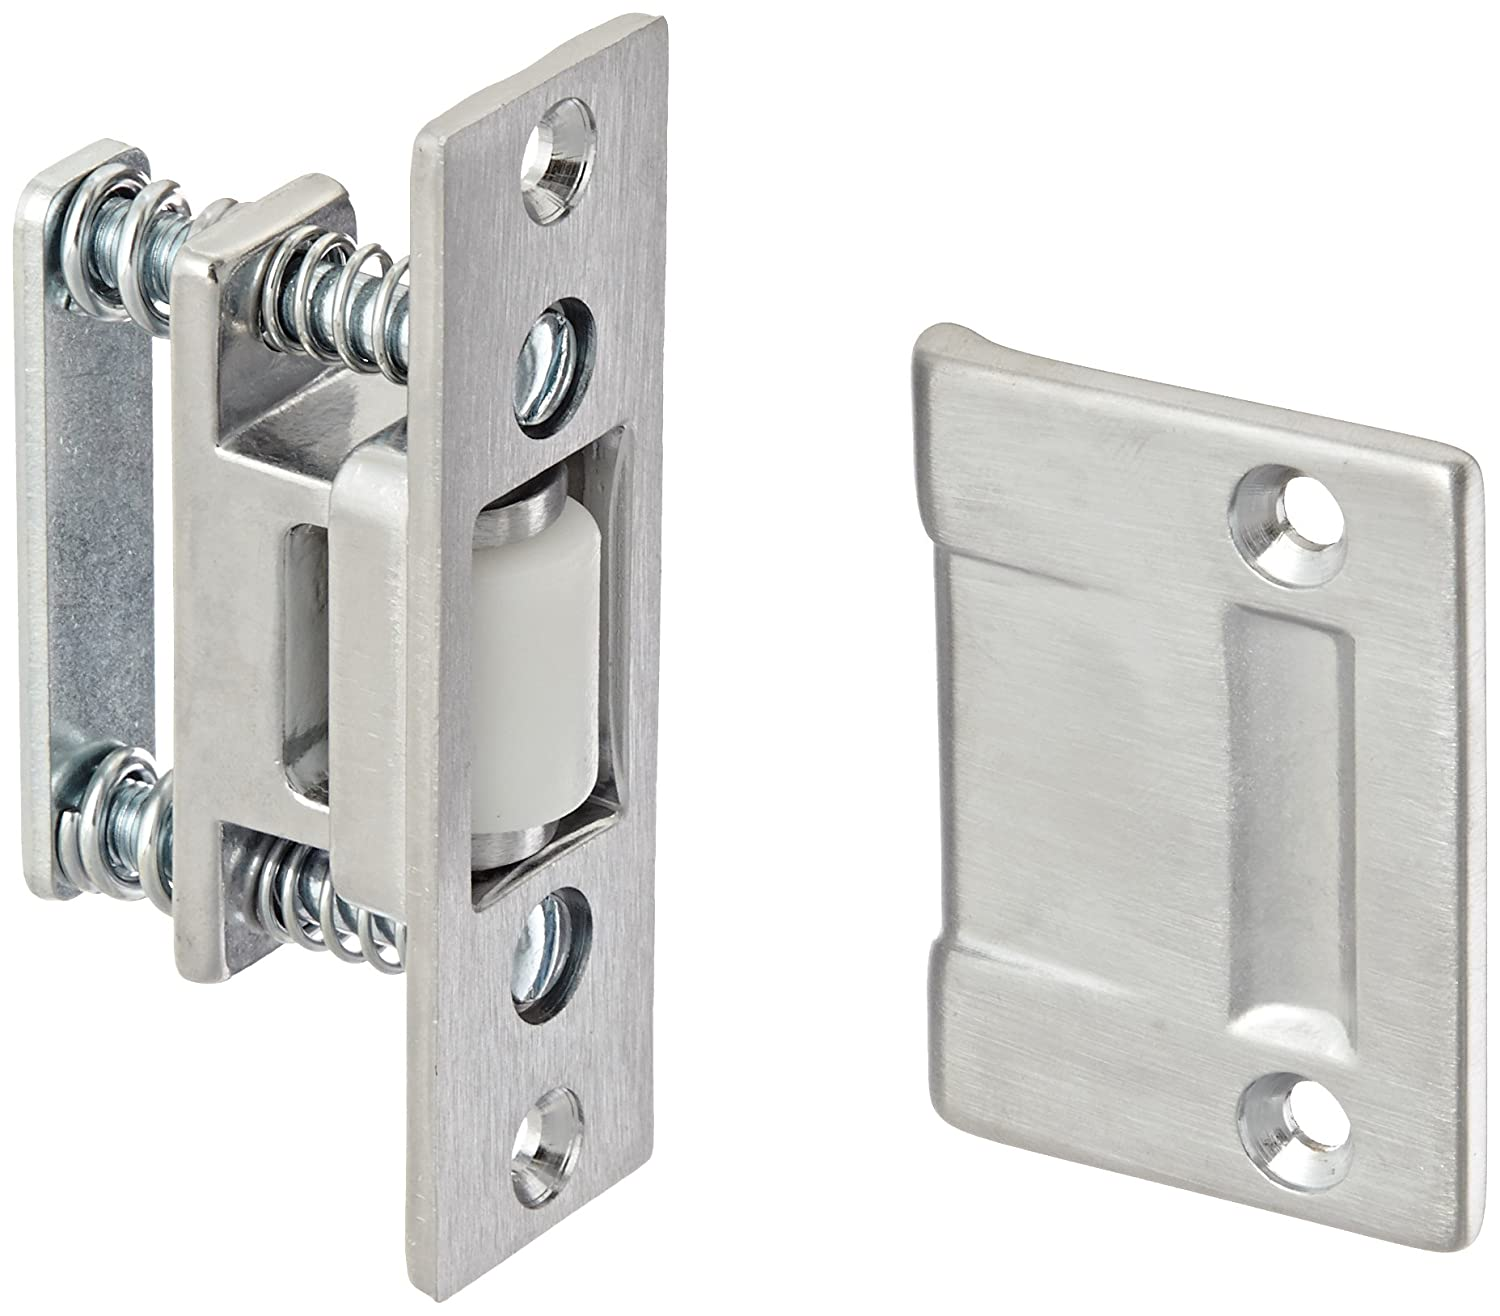 Rockwood 590.26D Brass Roller Latch with Cast Strike 1 Width x 3 3 8 Length 1 11 16 Strike Width x 2 1 4 Strike Length Satin Chrome Plated Finish